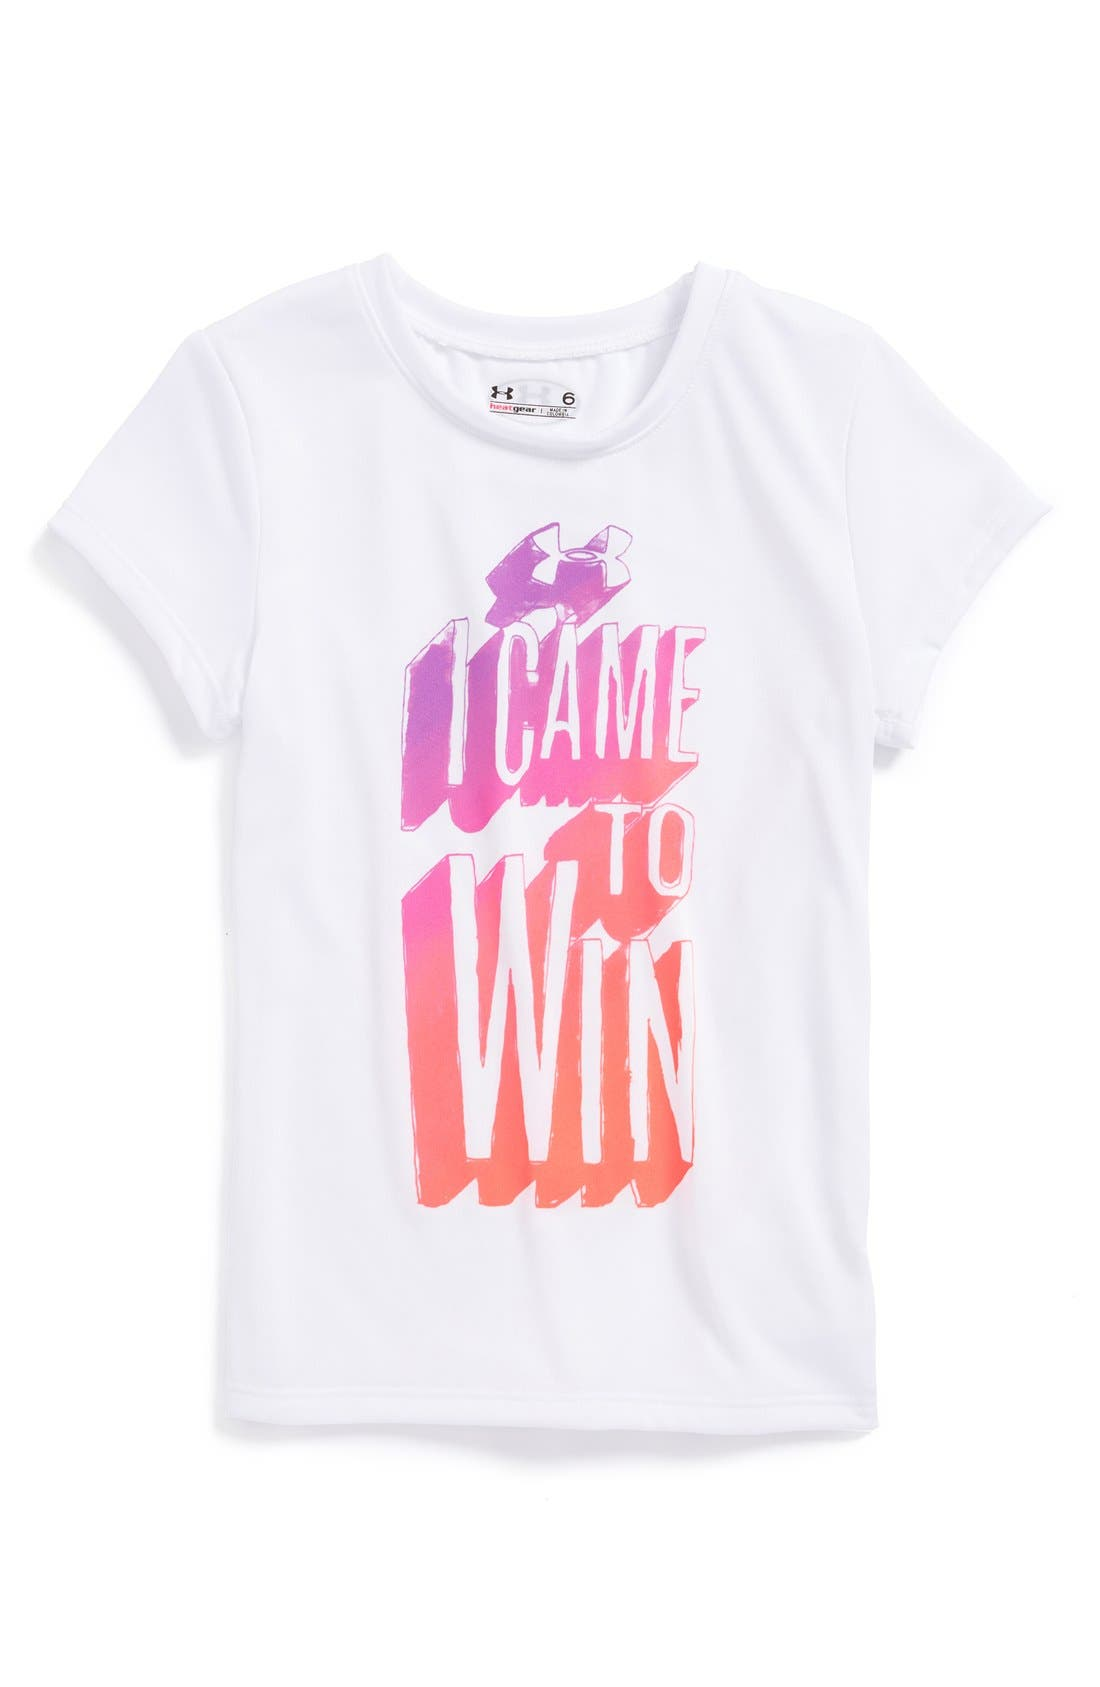 Main Image - Under Armour 'I Came to Win' Tee (Little Girls)